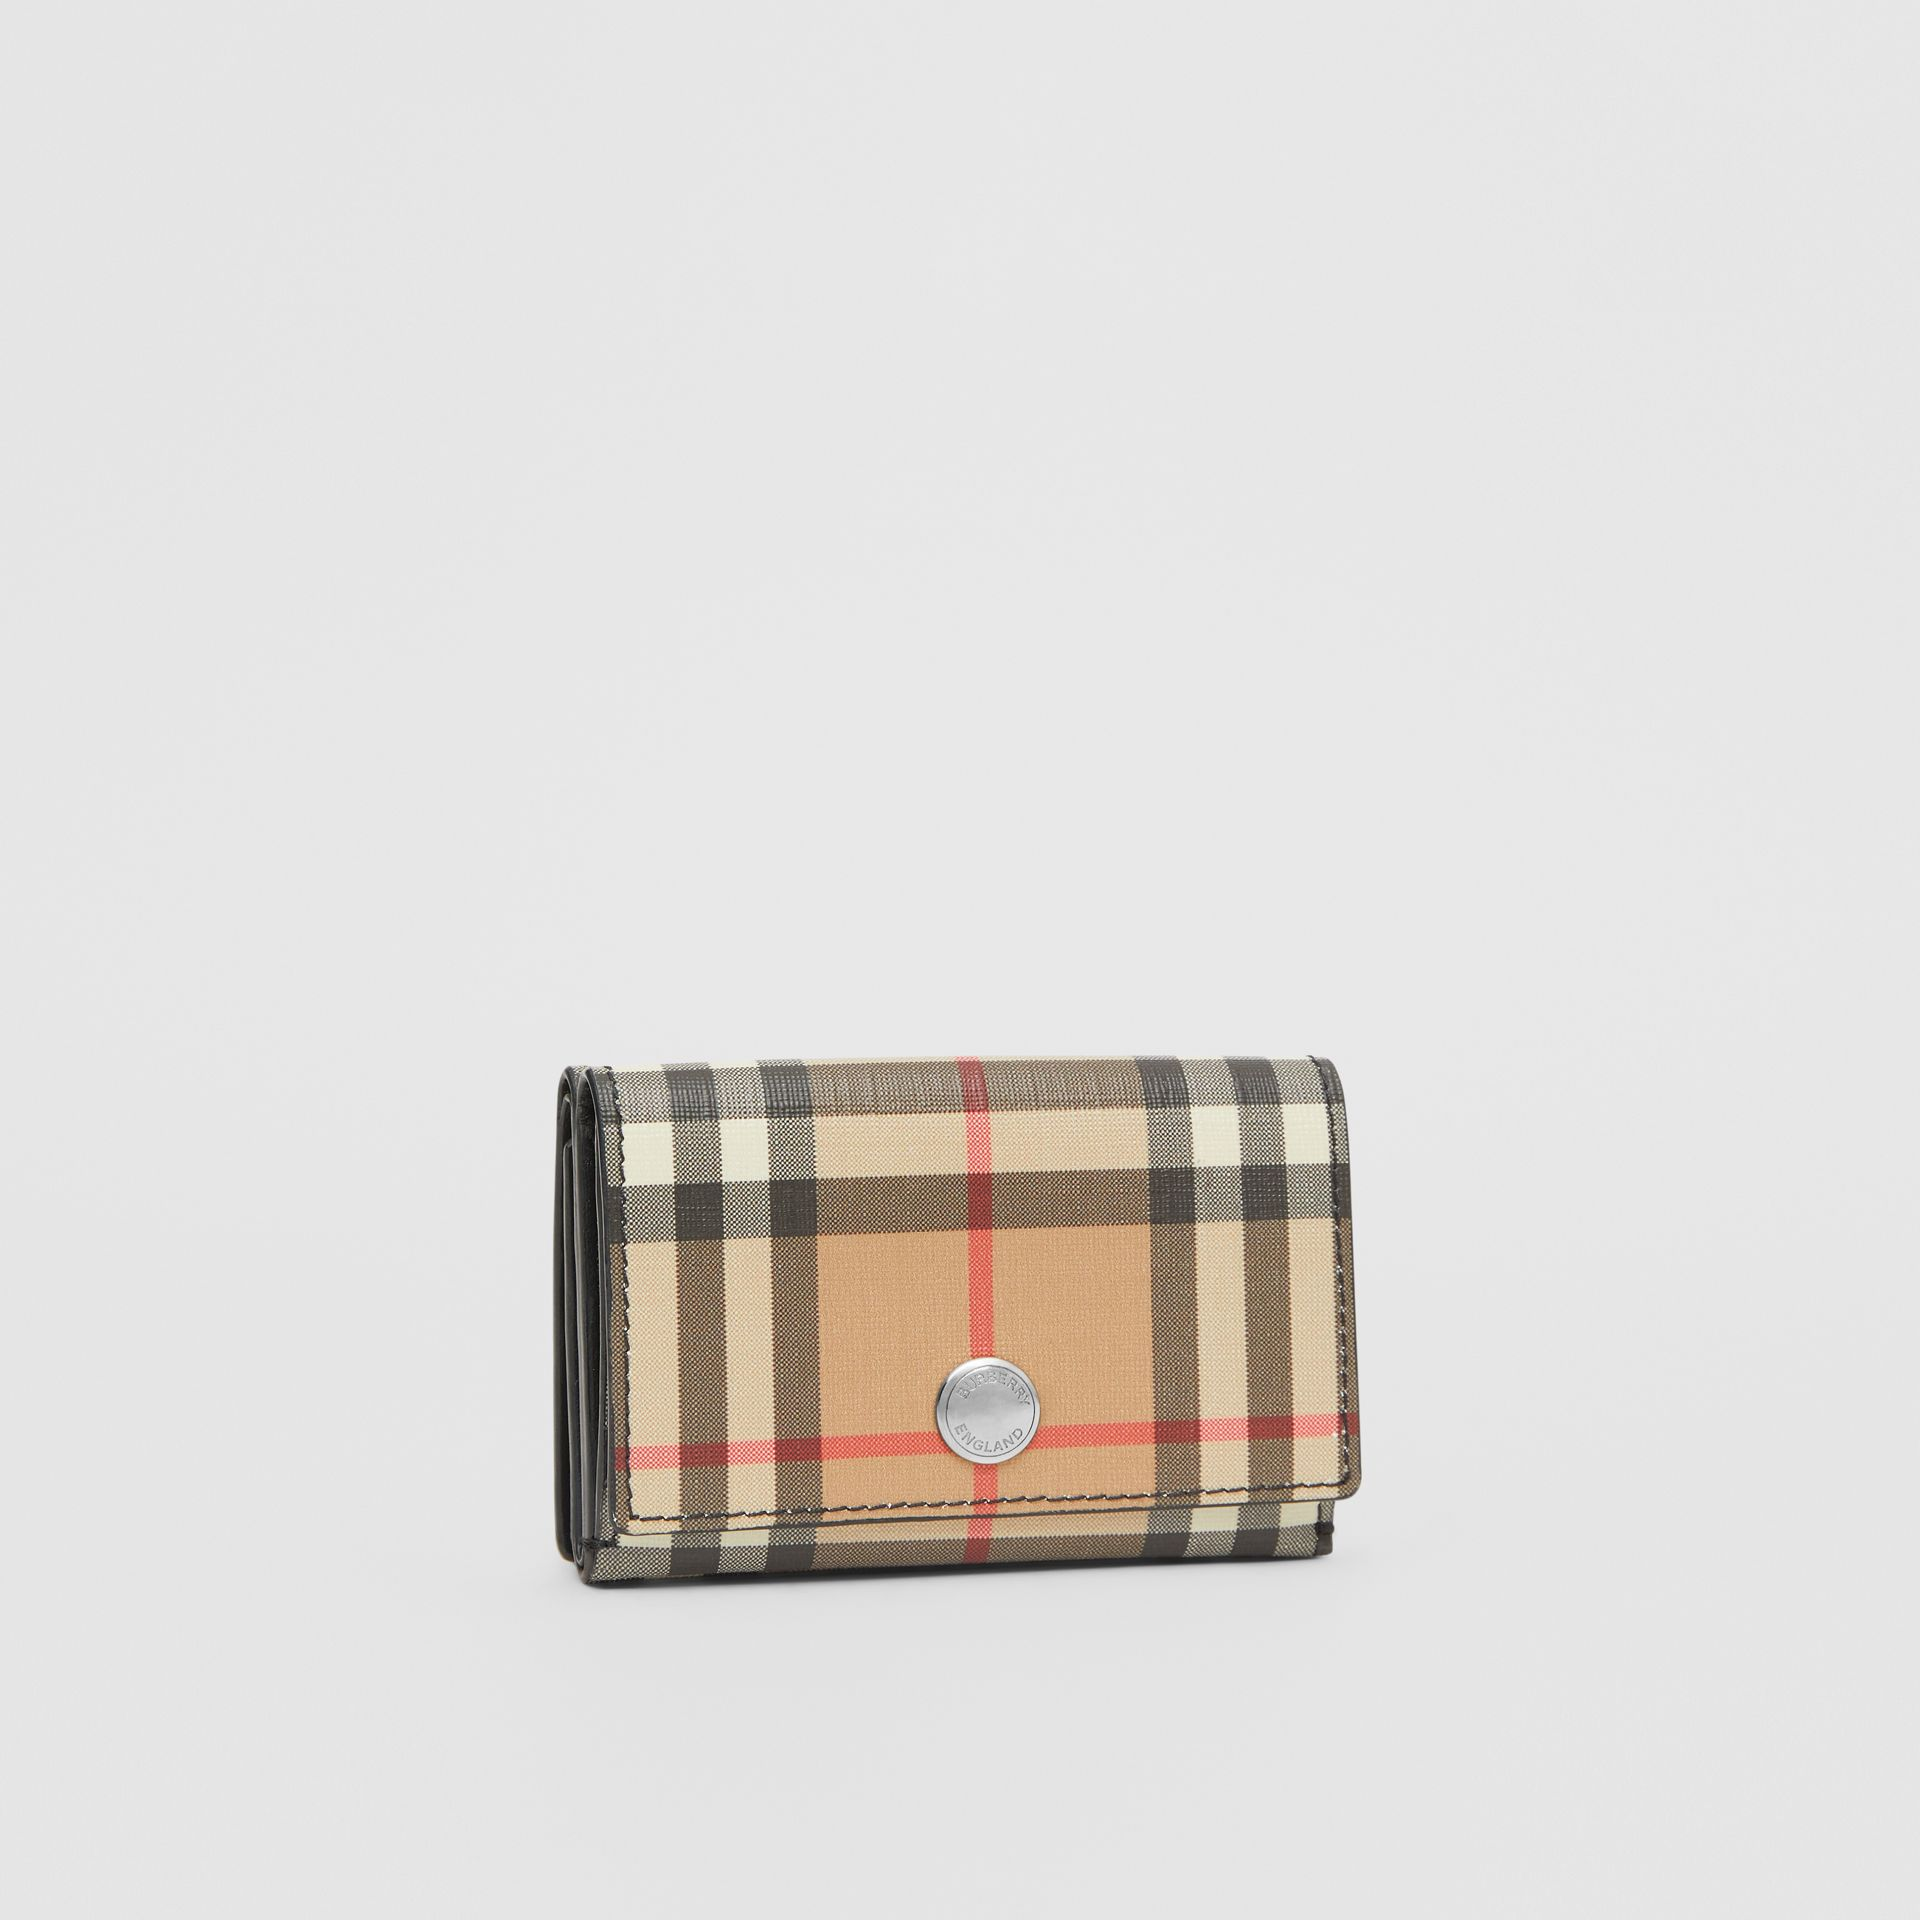 Small Vintage Check E-canvas Folding Wallet in Black - Women | Burberry - gallery image 3